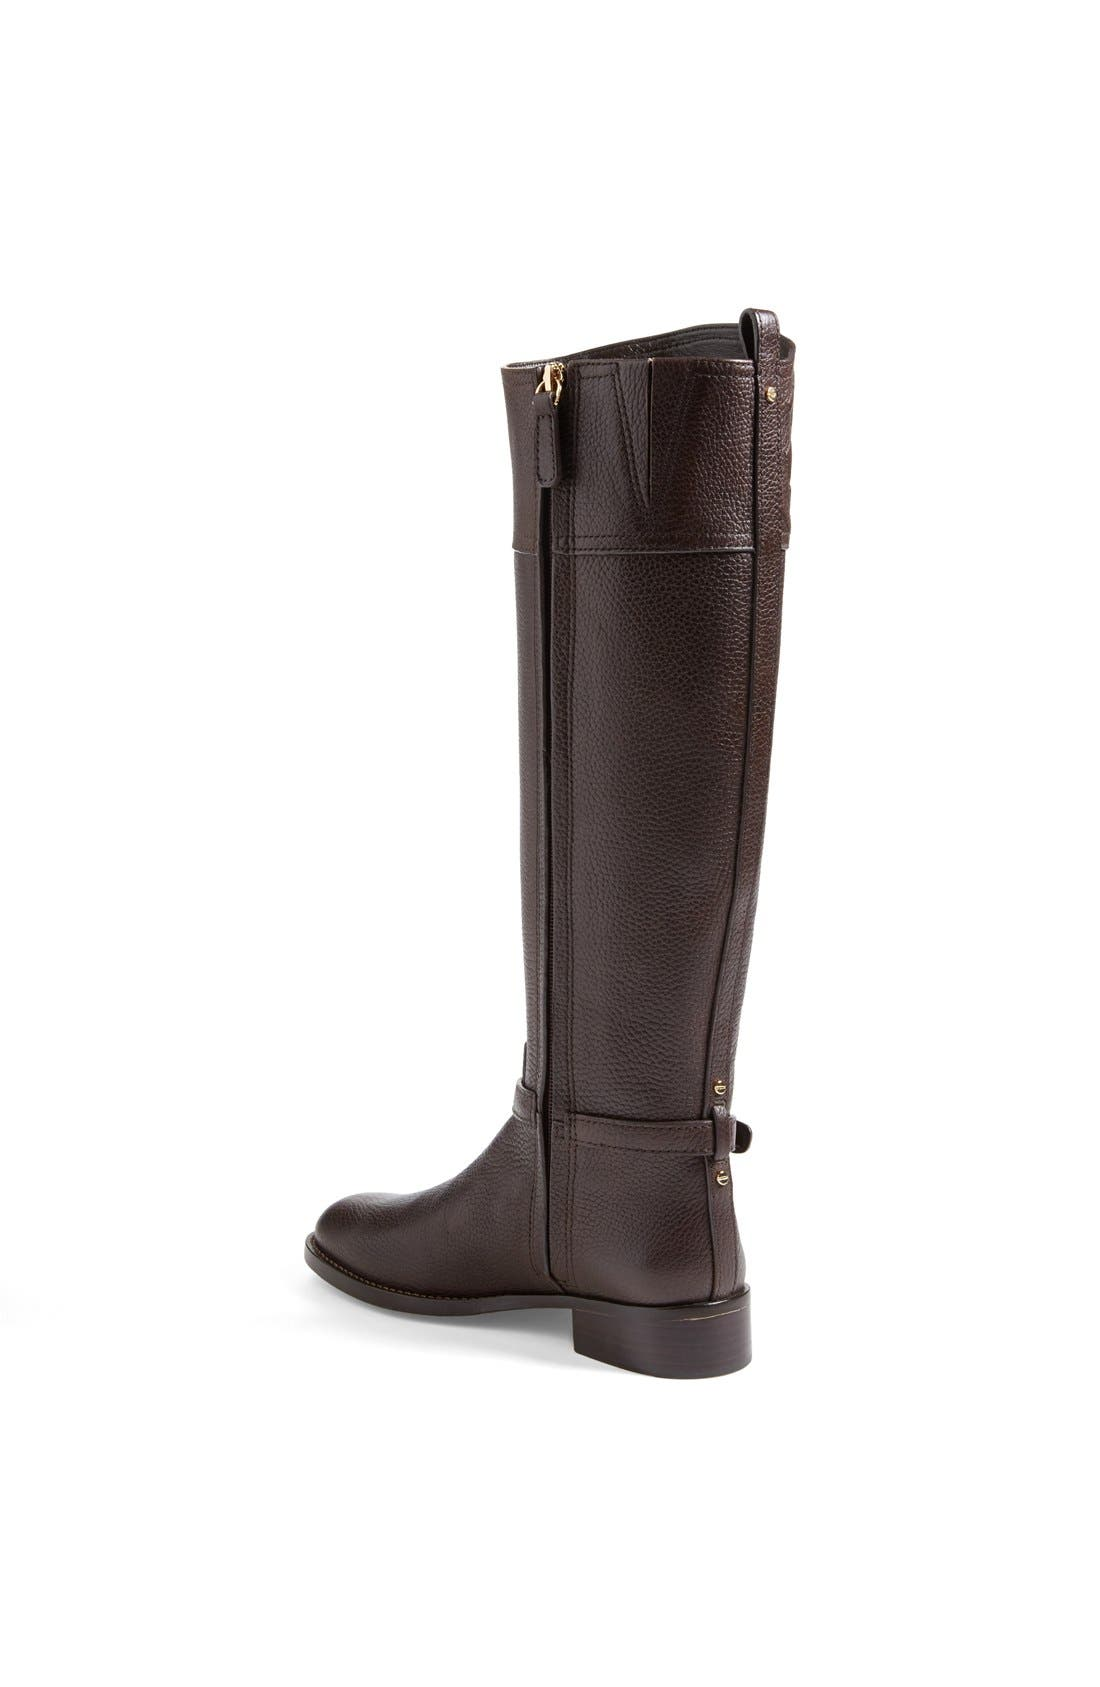 Alternate Image 2  - Tory Burch 'Marlene' Leather Riding Boot